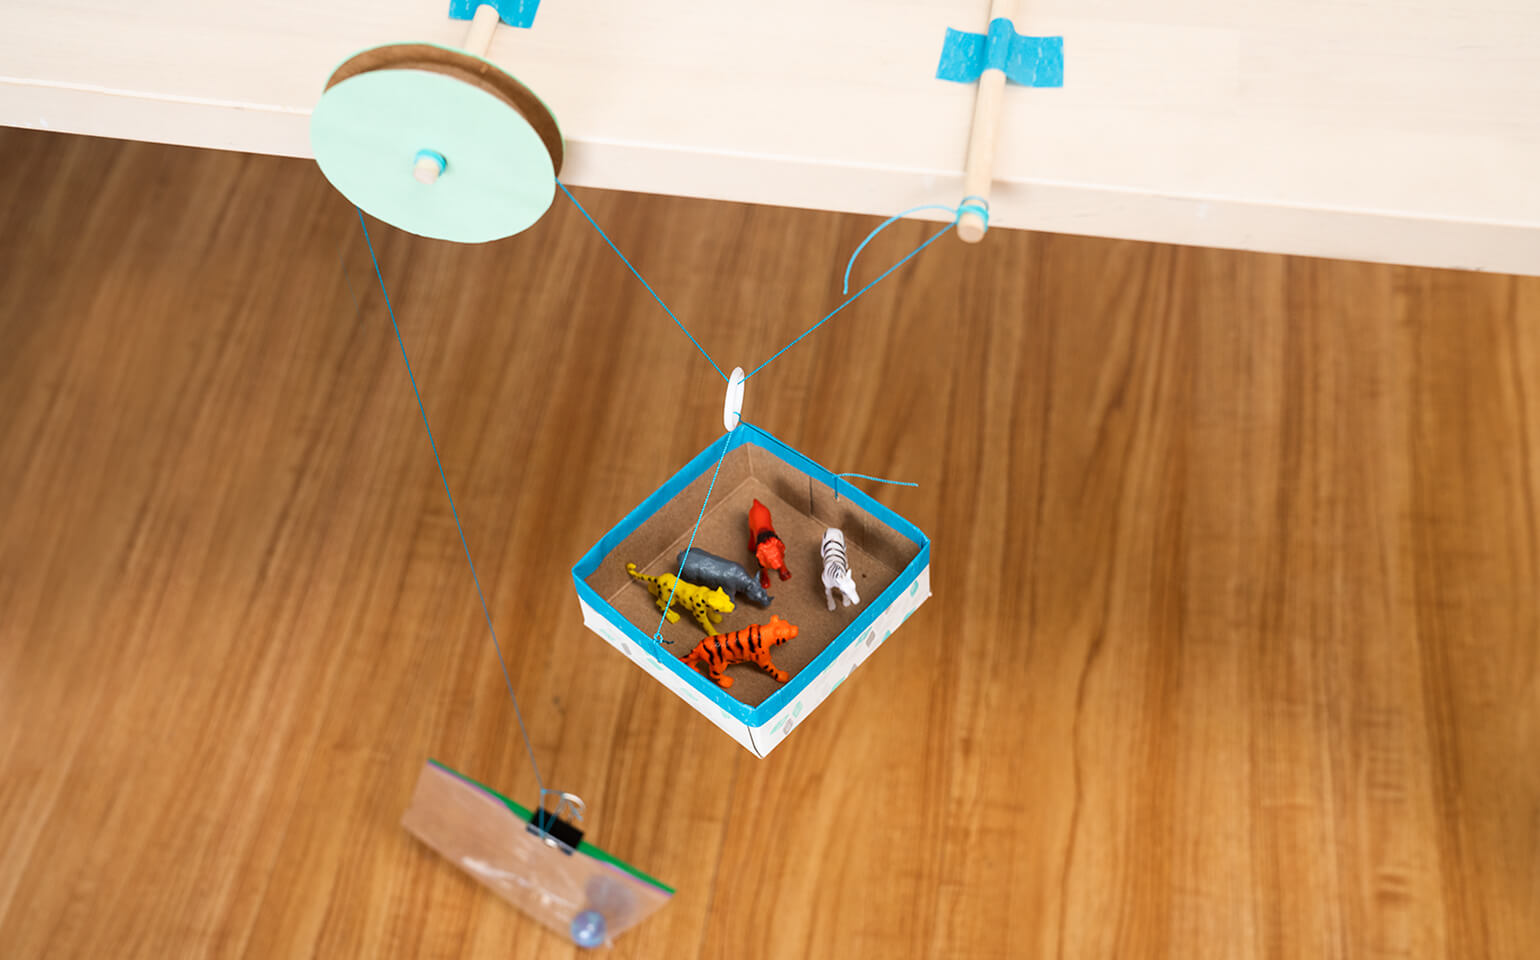 Playing-With-Pulleys-Body-13-2x